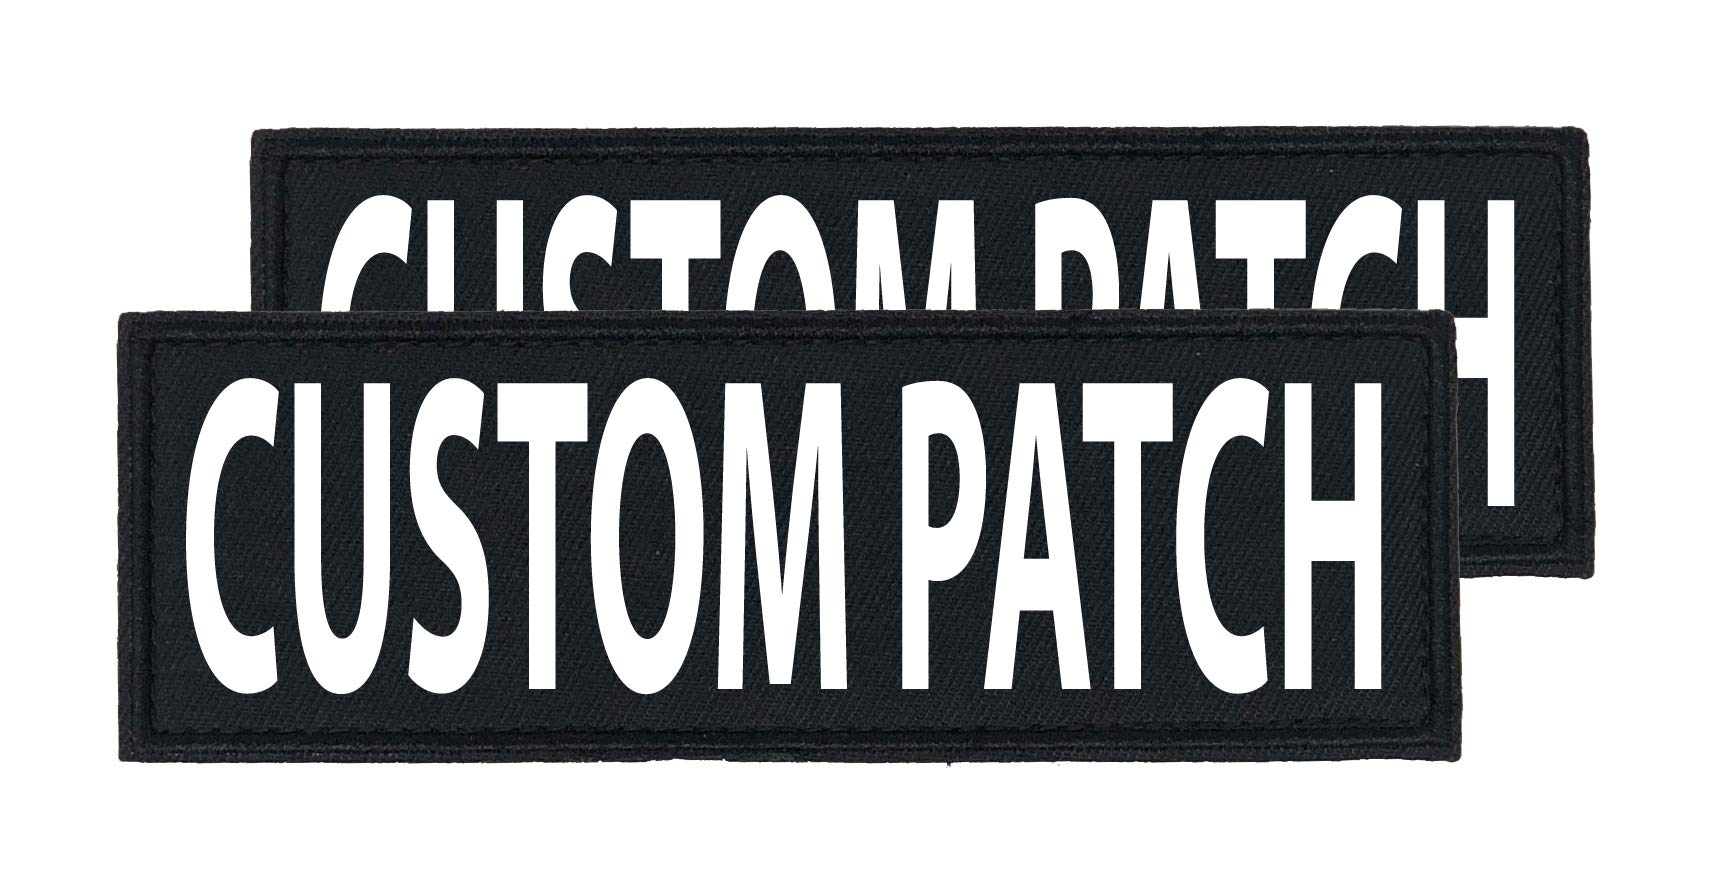 Dogline Custom Bright White Text Patch For Vest Harness Or Collar Customizable Text Personalized Patches with Hook Backing Name Service Dog In Training Emotional Support (2 patches) - 1.5'' x 5'' by 101 Outlets